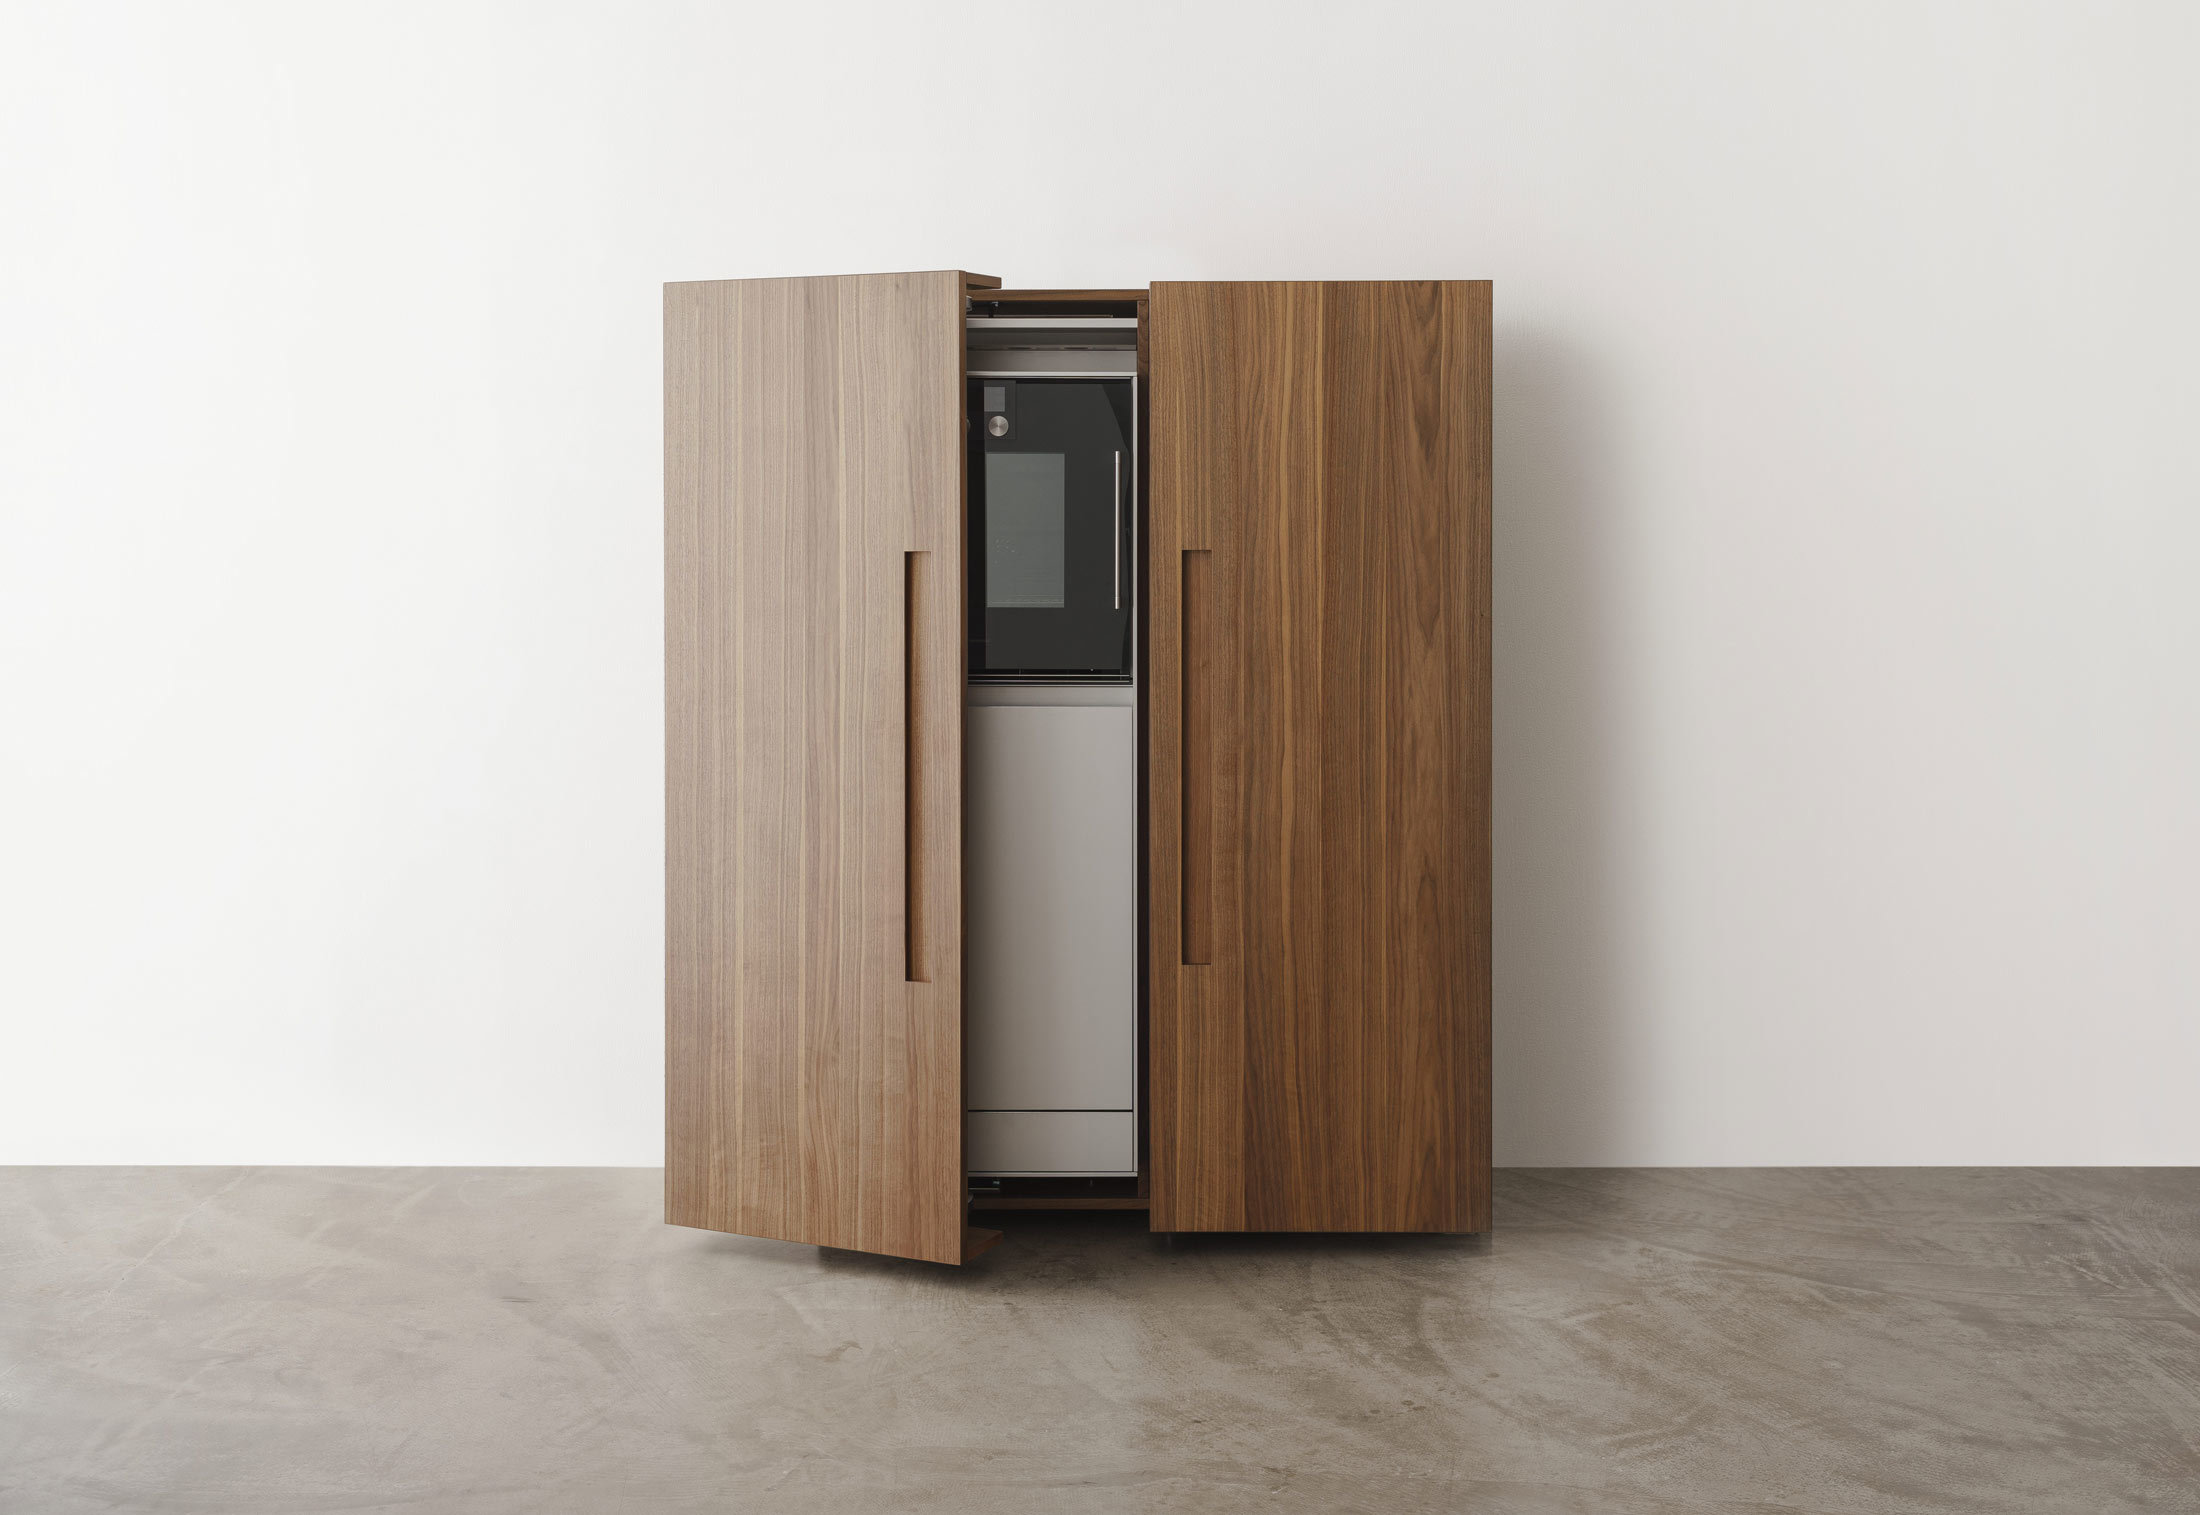 Bulthaup B2 Kitchen Appliance Housing Cabinet By Bulthaup Stylepark